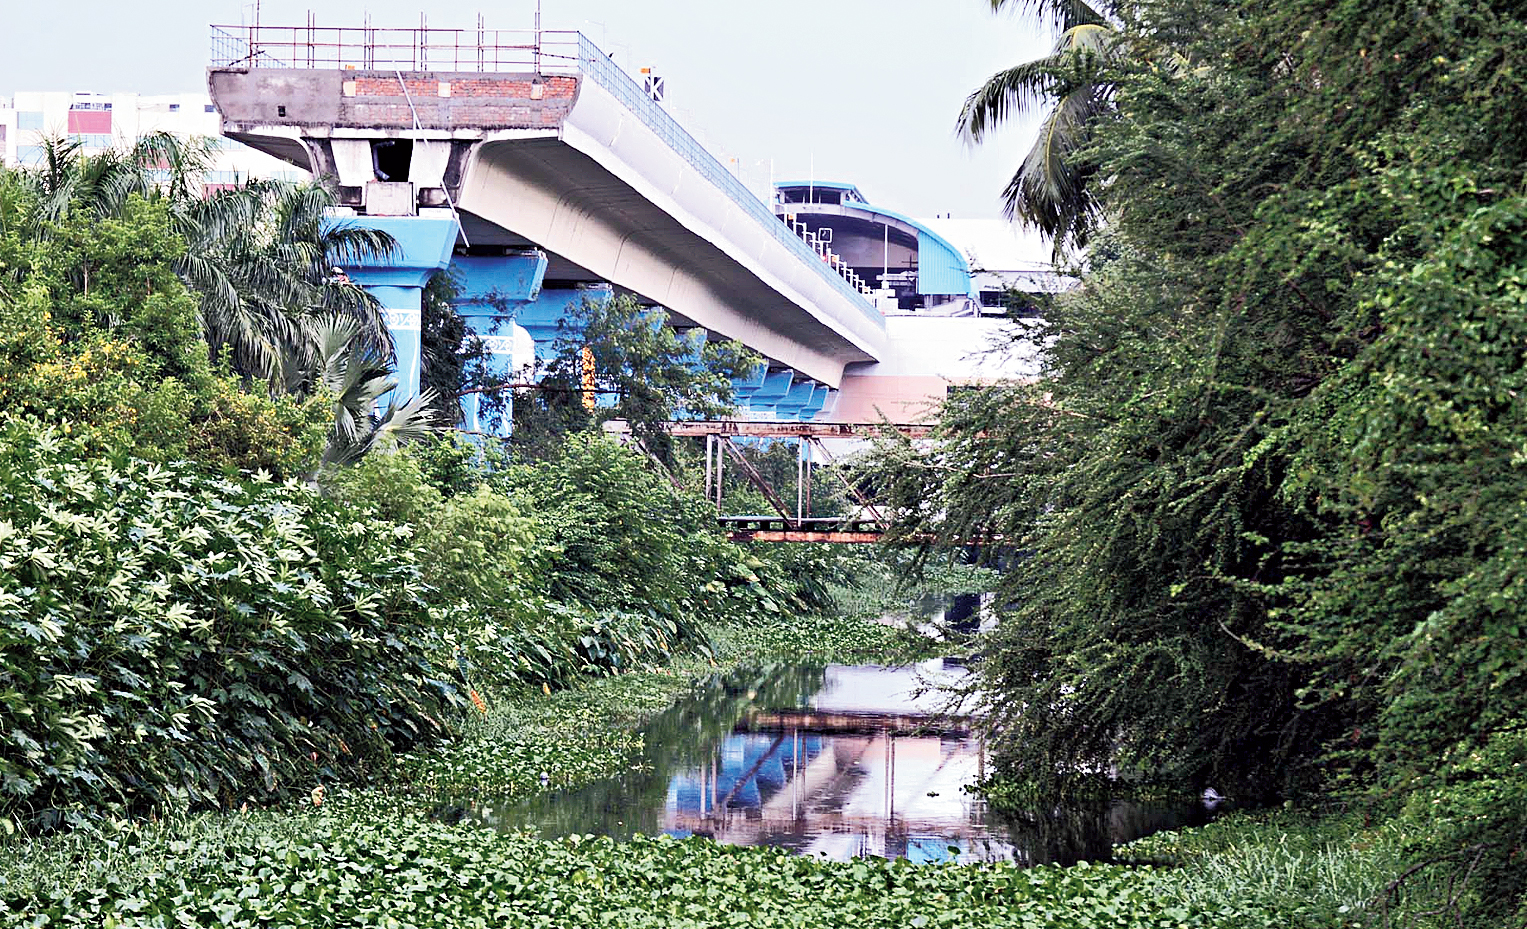 Water hyacinths and wild growth engulf much of the canal under the viaduct.